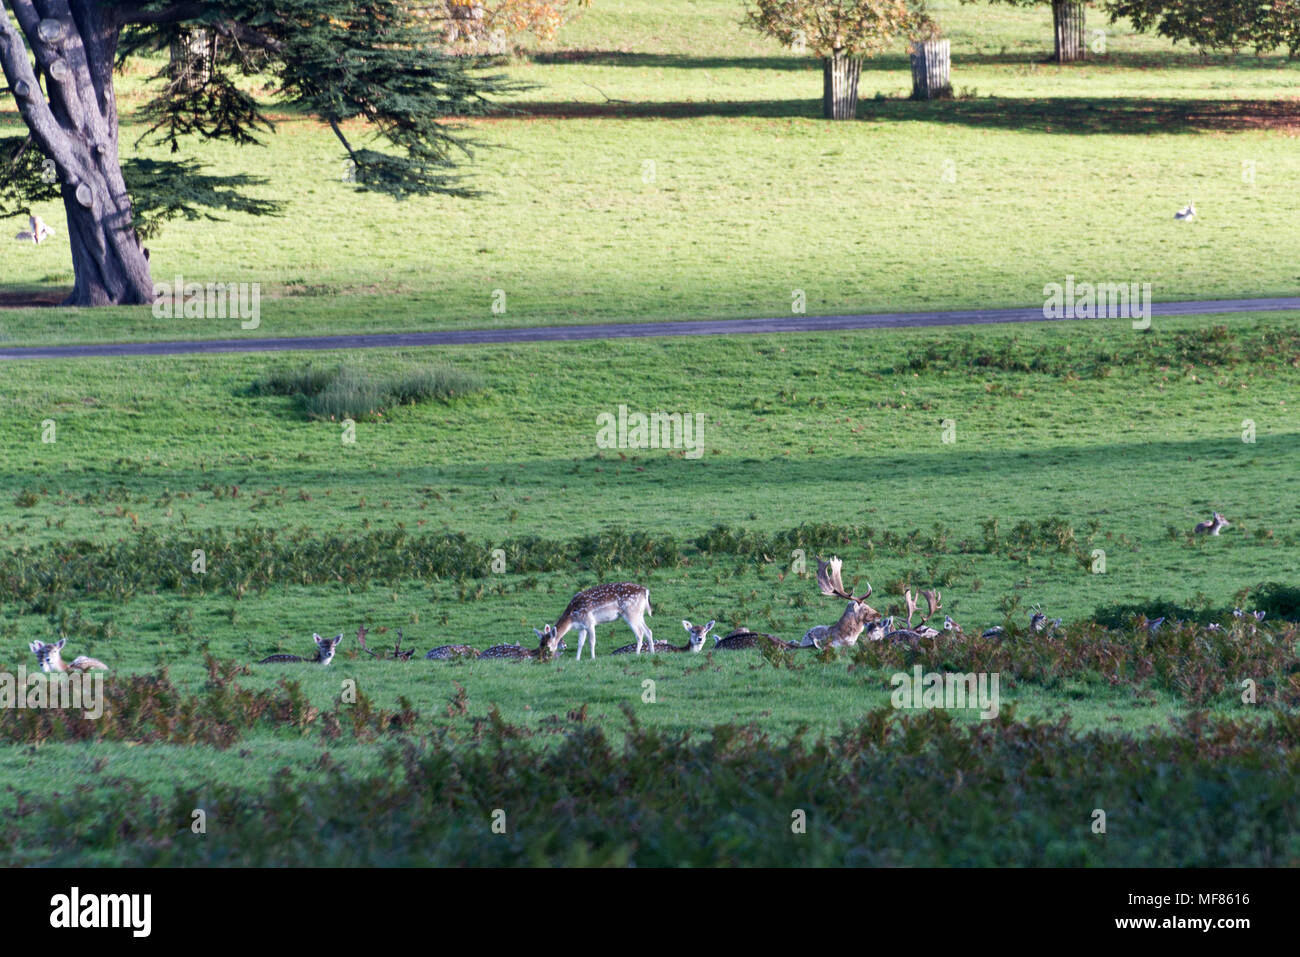 Fallow deer in Powderham Castle deer park on the shores of the Exe Estuary in Devon England. The castle is home to the Earl and Countess of Devon - Stock Image